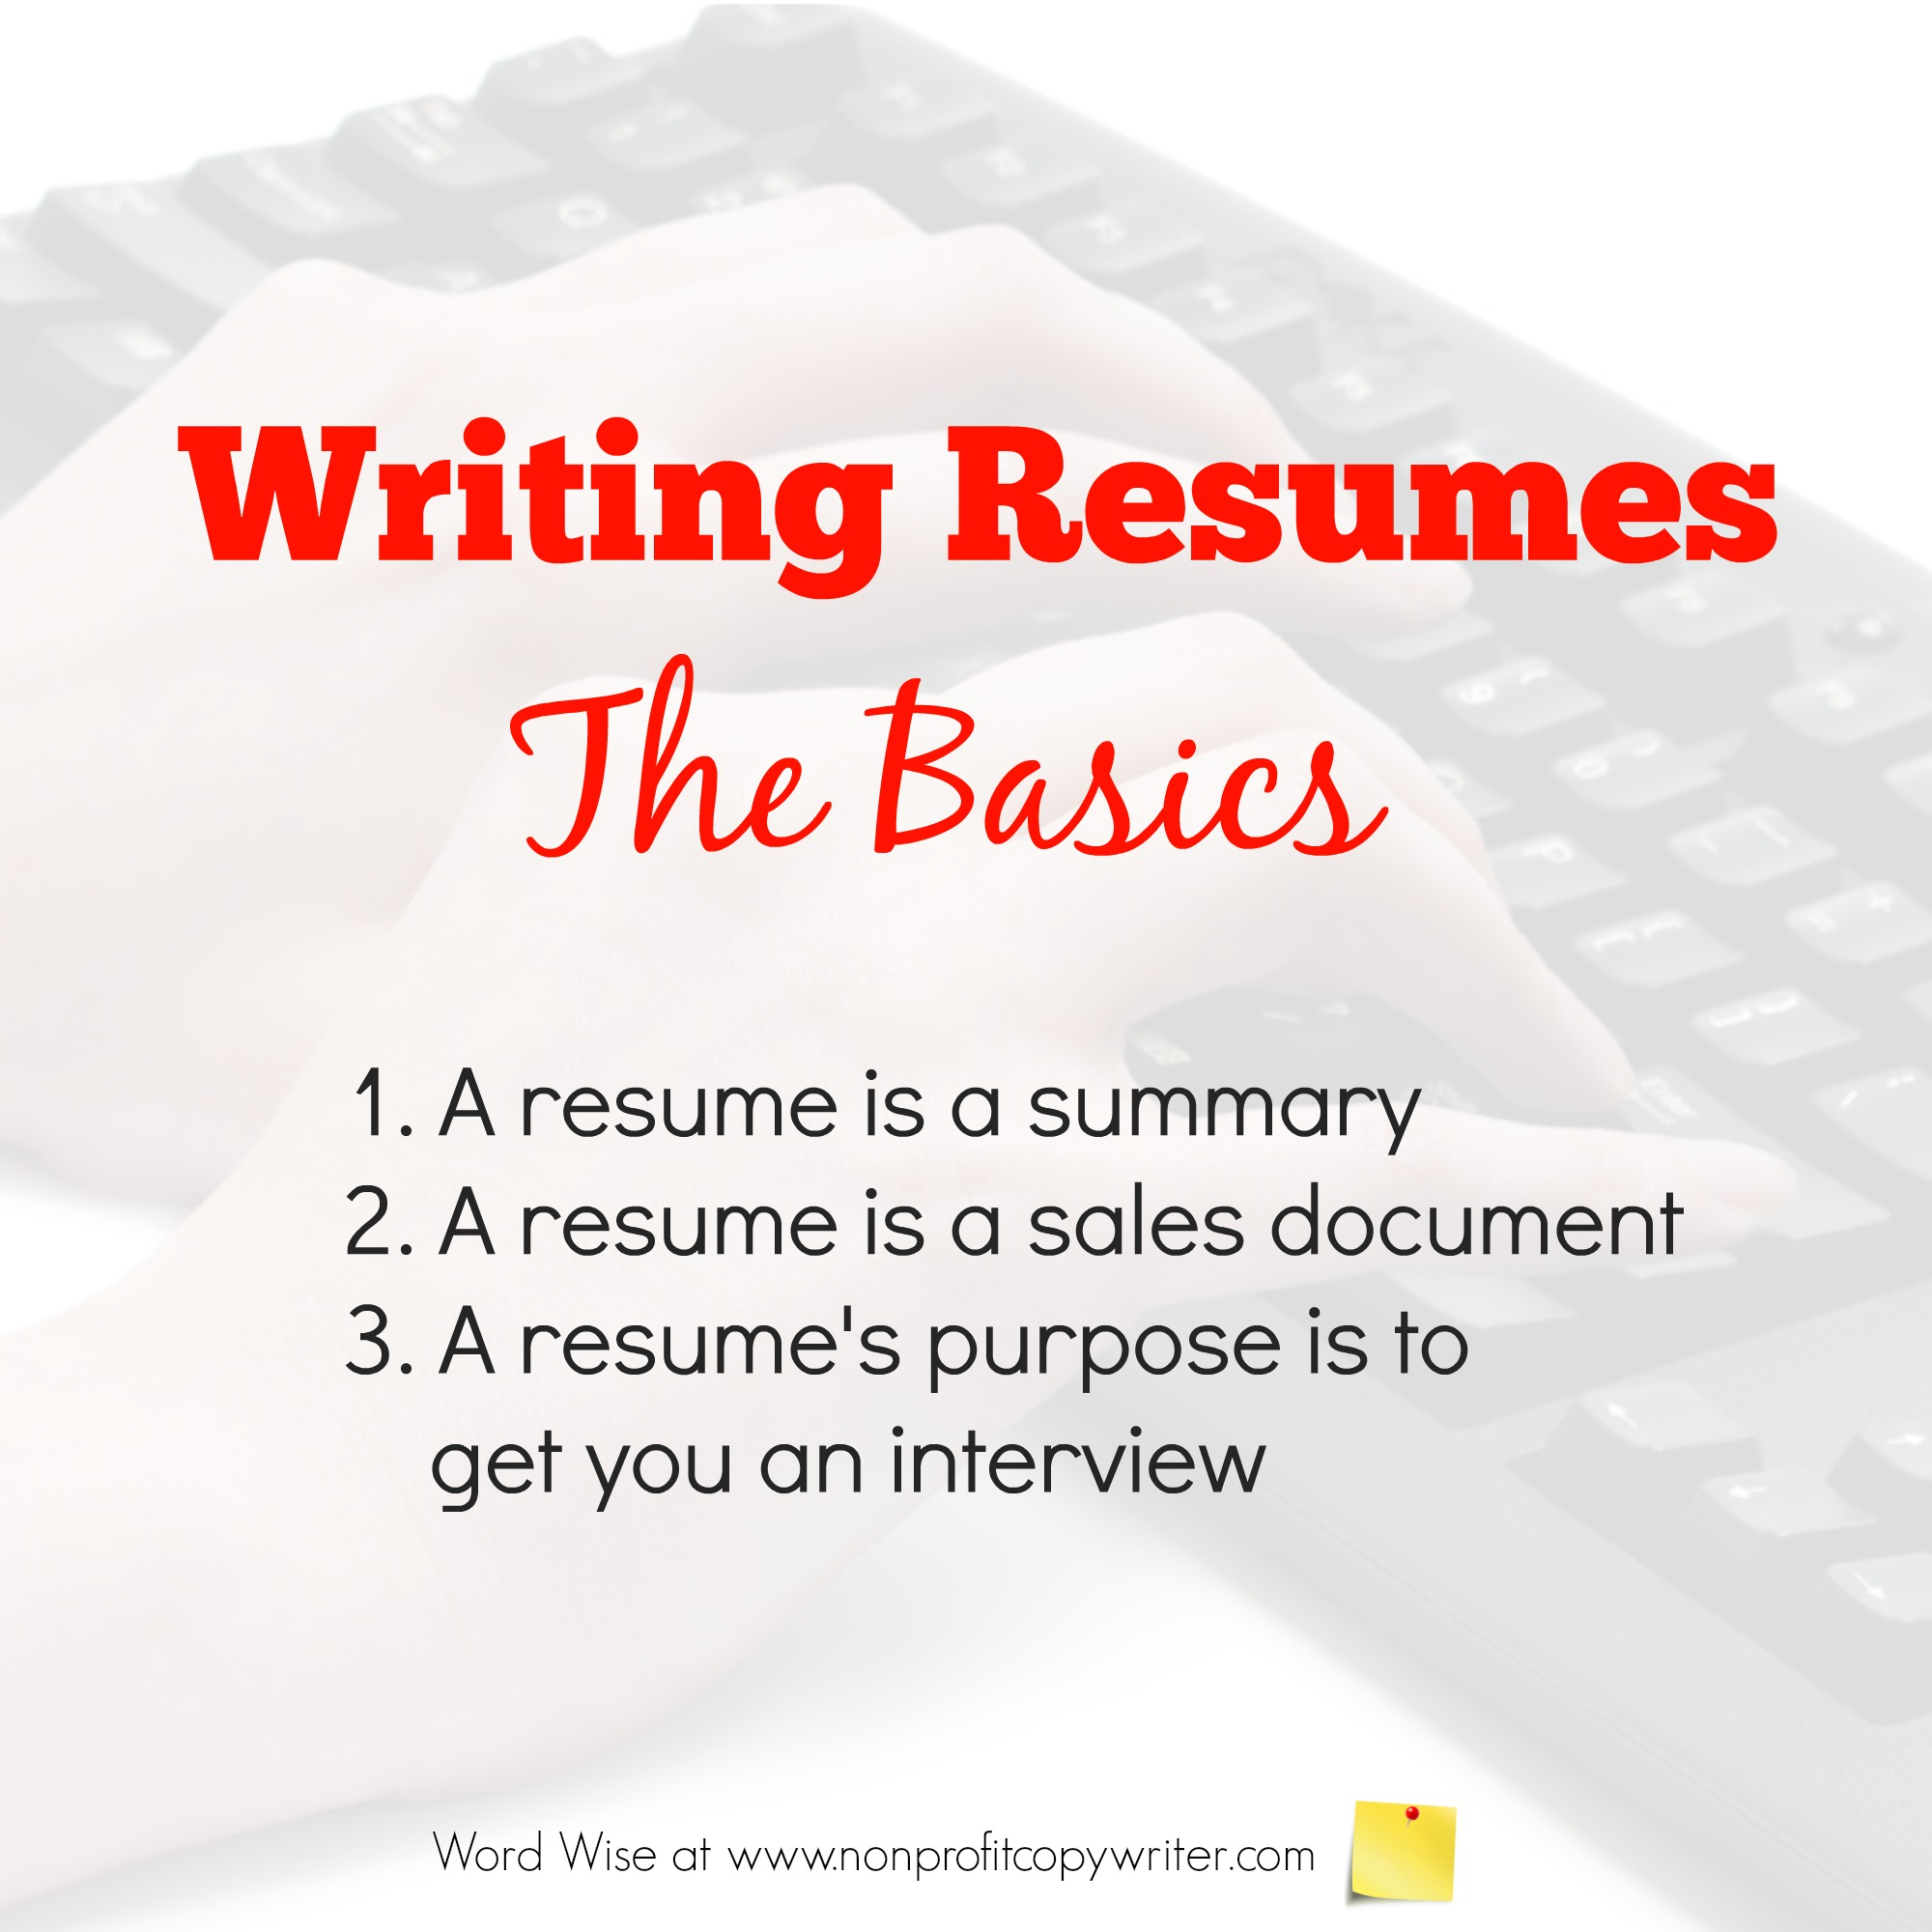 Writing Resumes: the basics with Word Wise at Nonprofit Copywriter